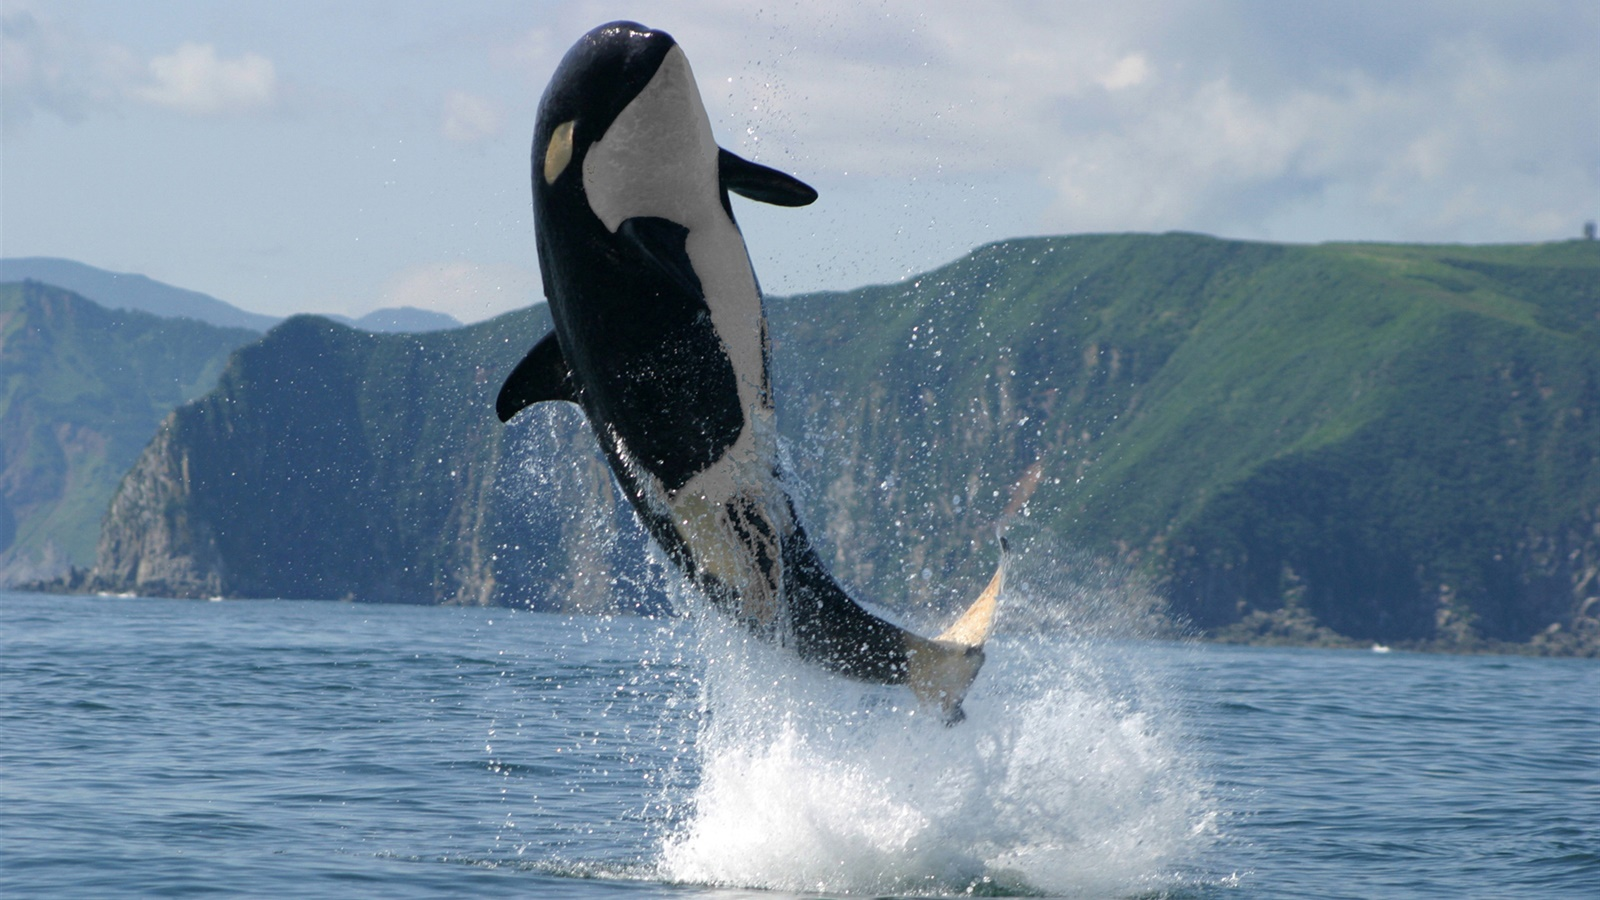 Orca jumping, sea, water splash 1600x900 wallpaper